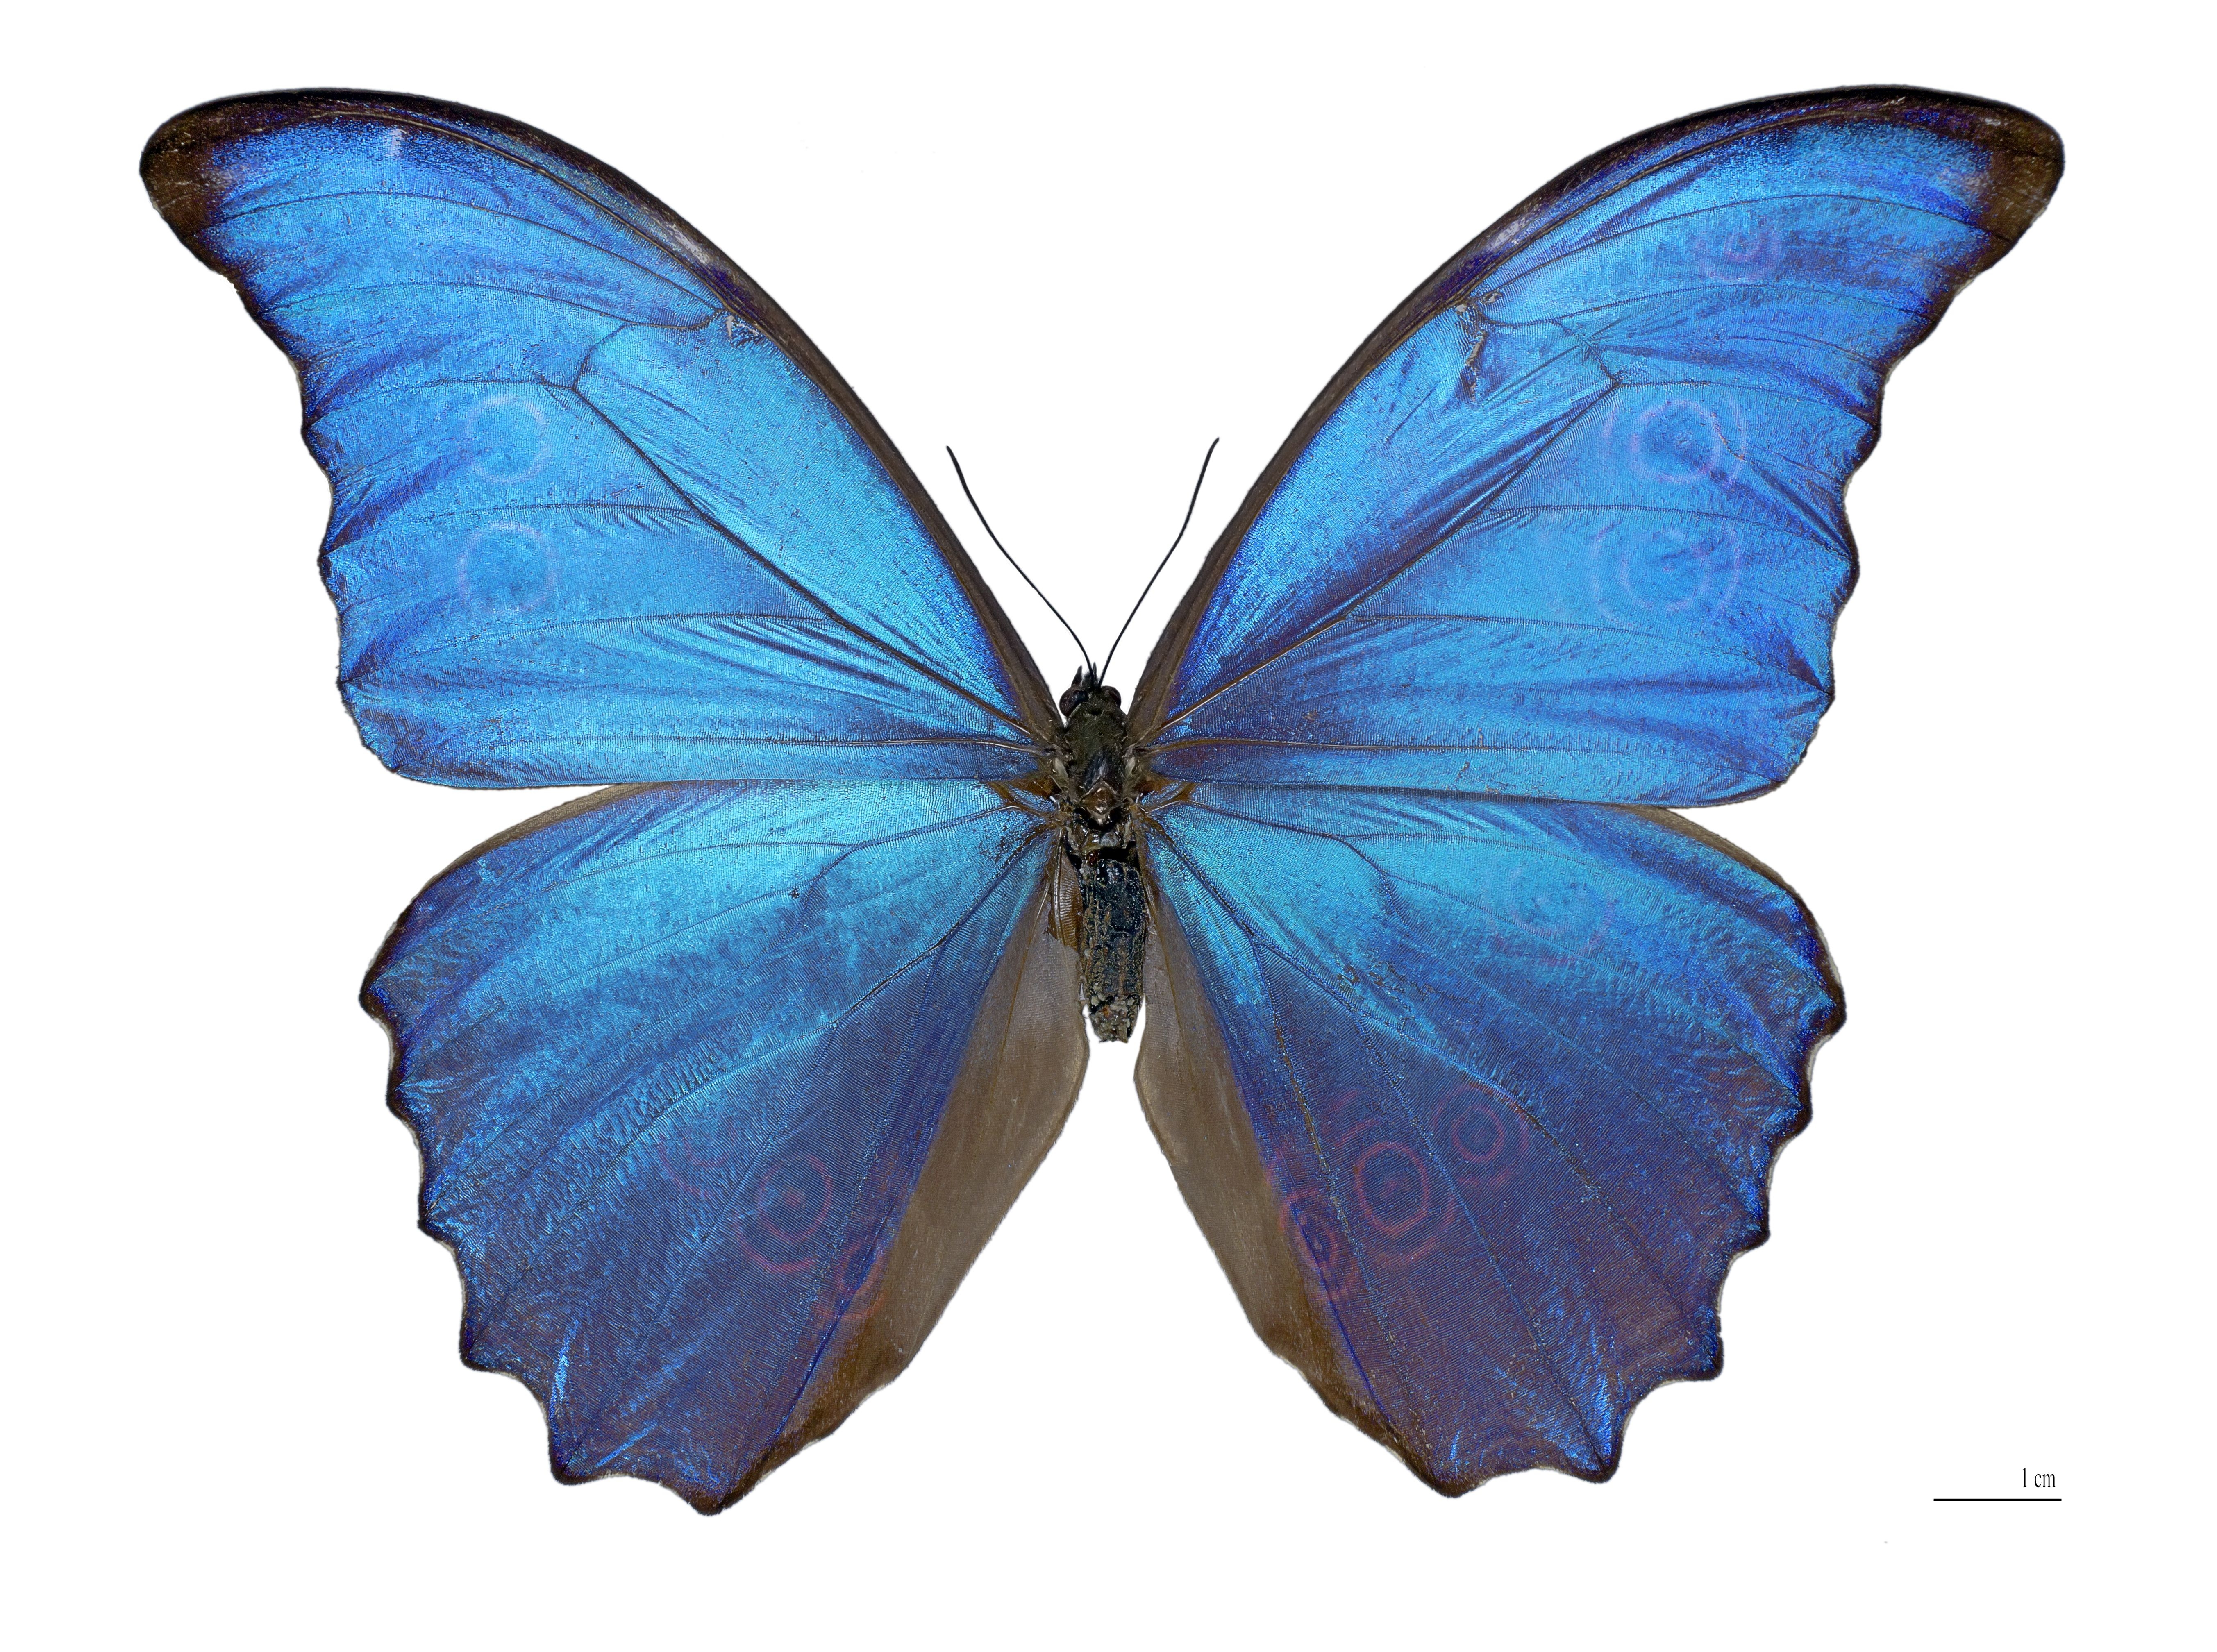 Damien Hirst S Butterflies Distressing But Weirdly Uplifting Blue Morpho Butterfly Damien Hirst Butterfly Morpho Butterfly